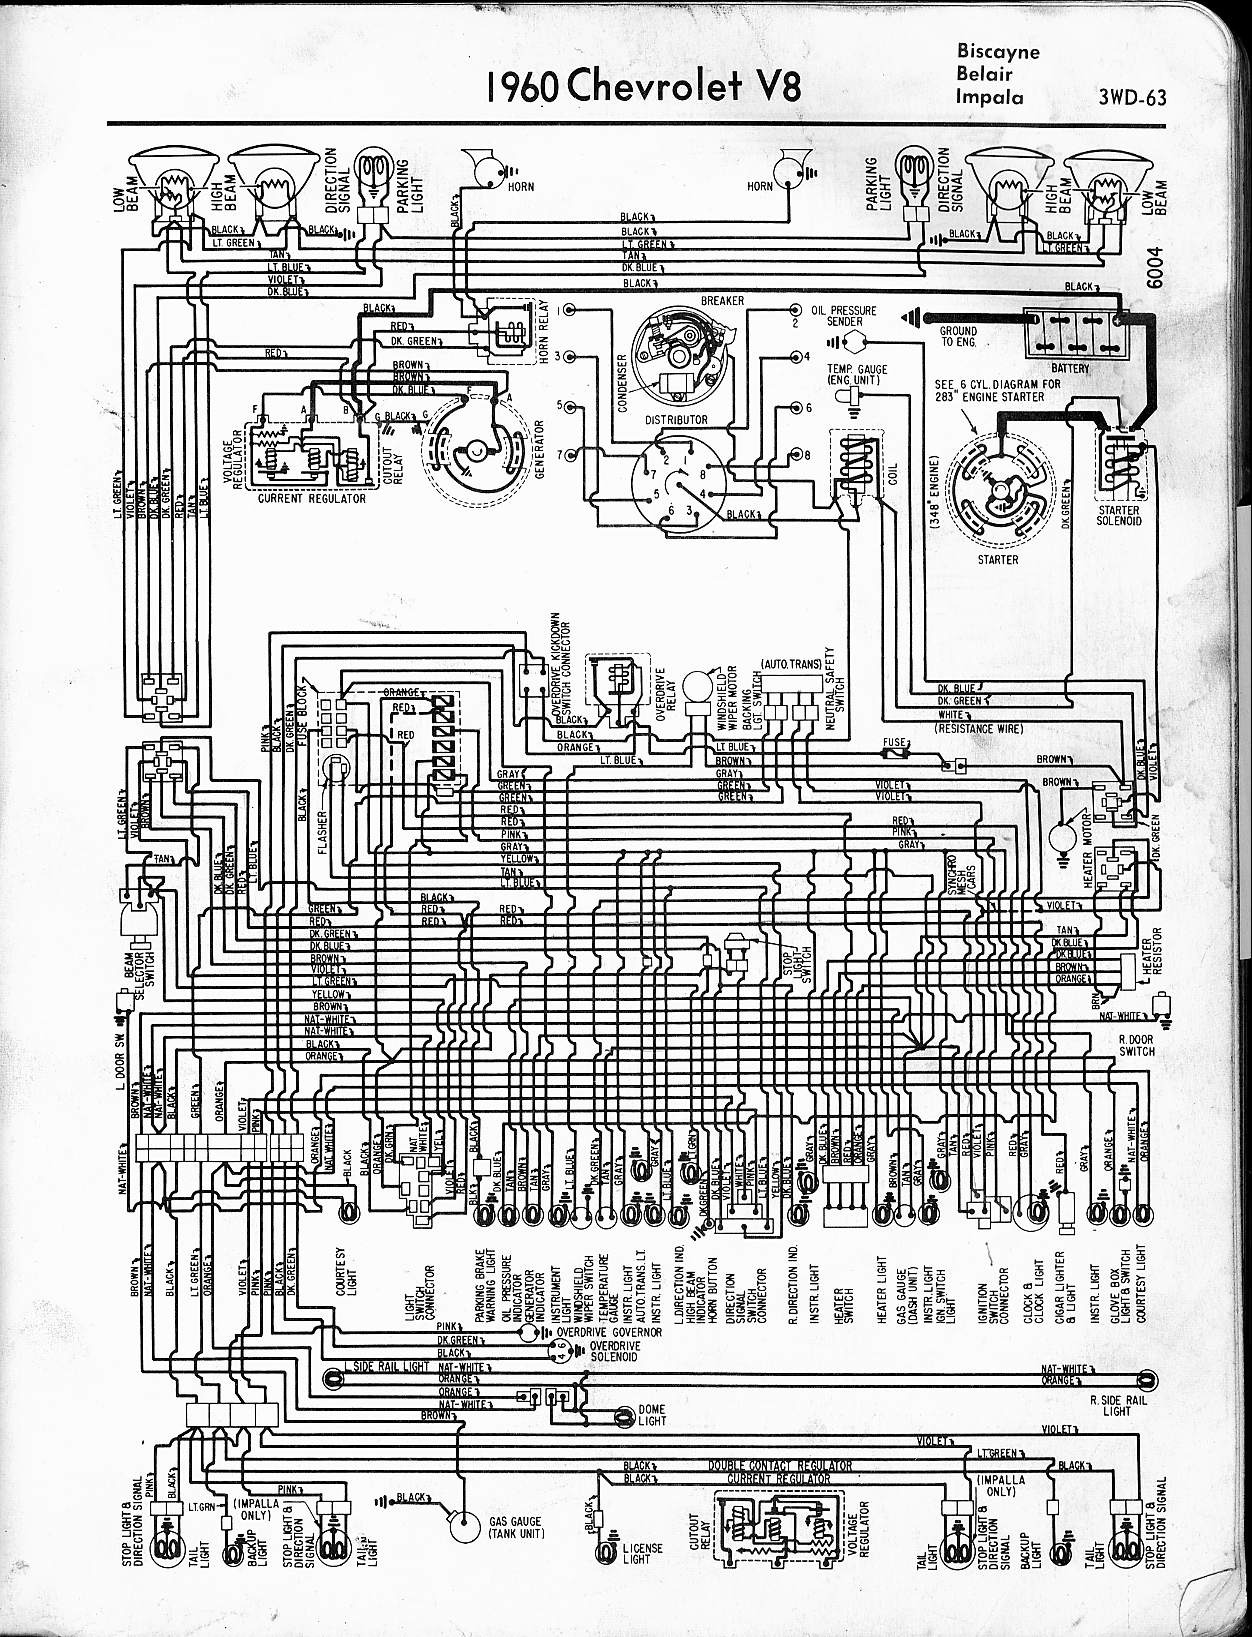 1964 chevy impala wiring diagram Collection-1960 V8 Biscayne Belair Impala 20-m